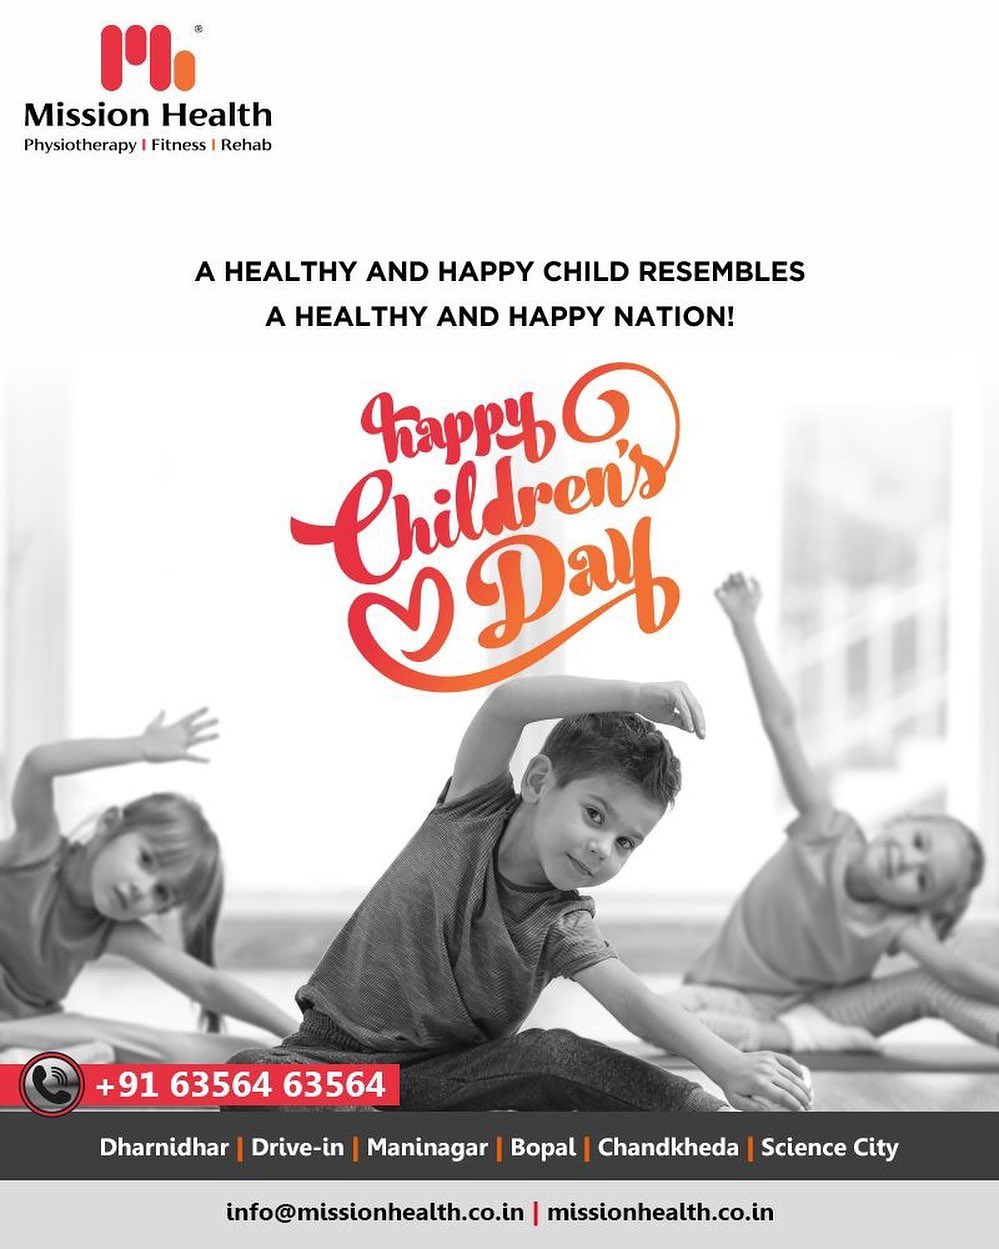 A healthy and happy child resembles a healthy and happy nation!  #HappyChildrensDay #ChildrensDay #MissionHealth #MissionHealthIndia #MovementIsLife #AbilityClinic